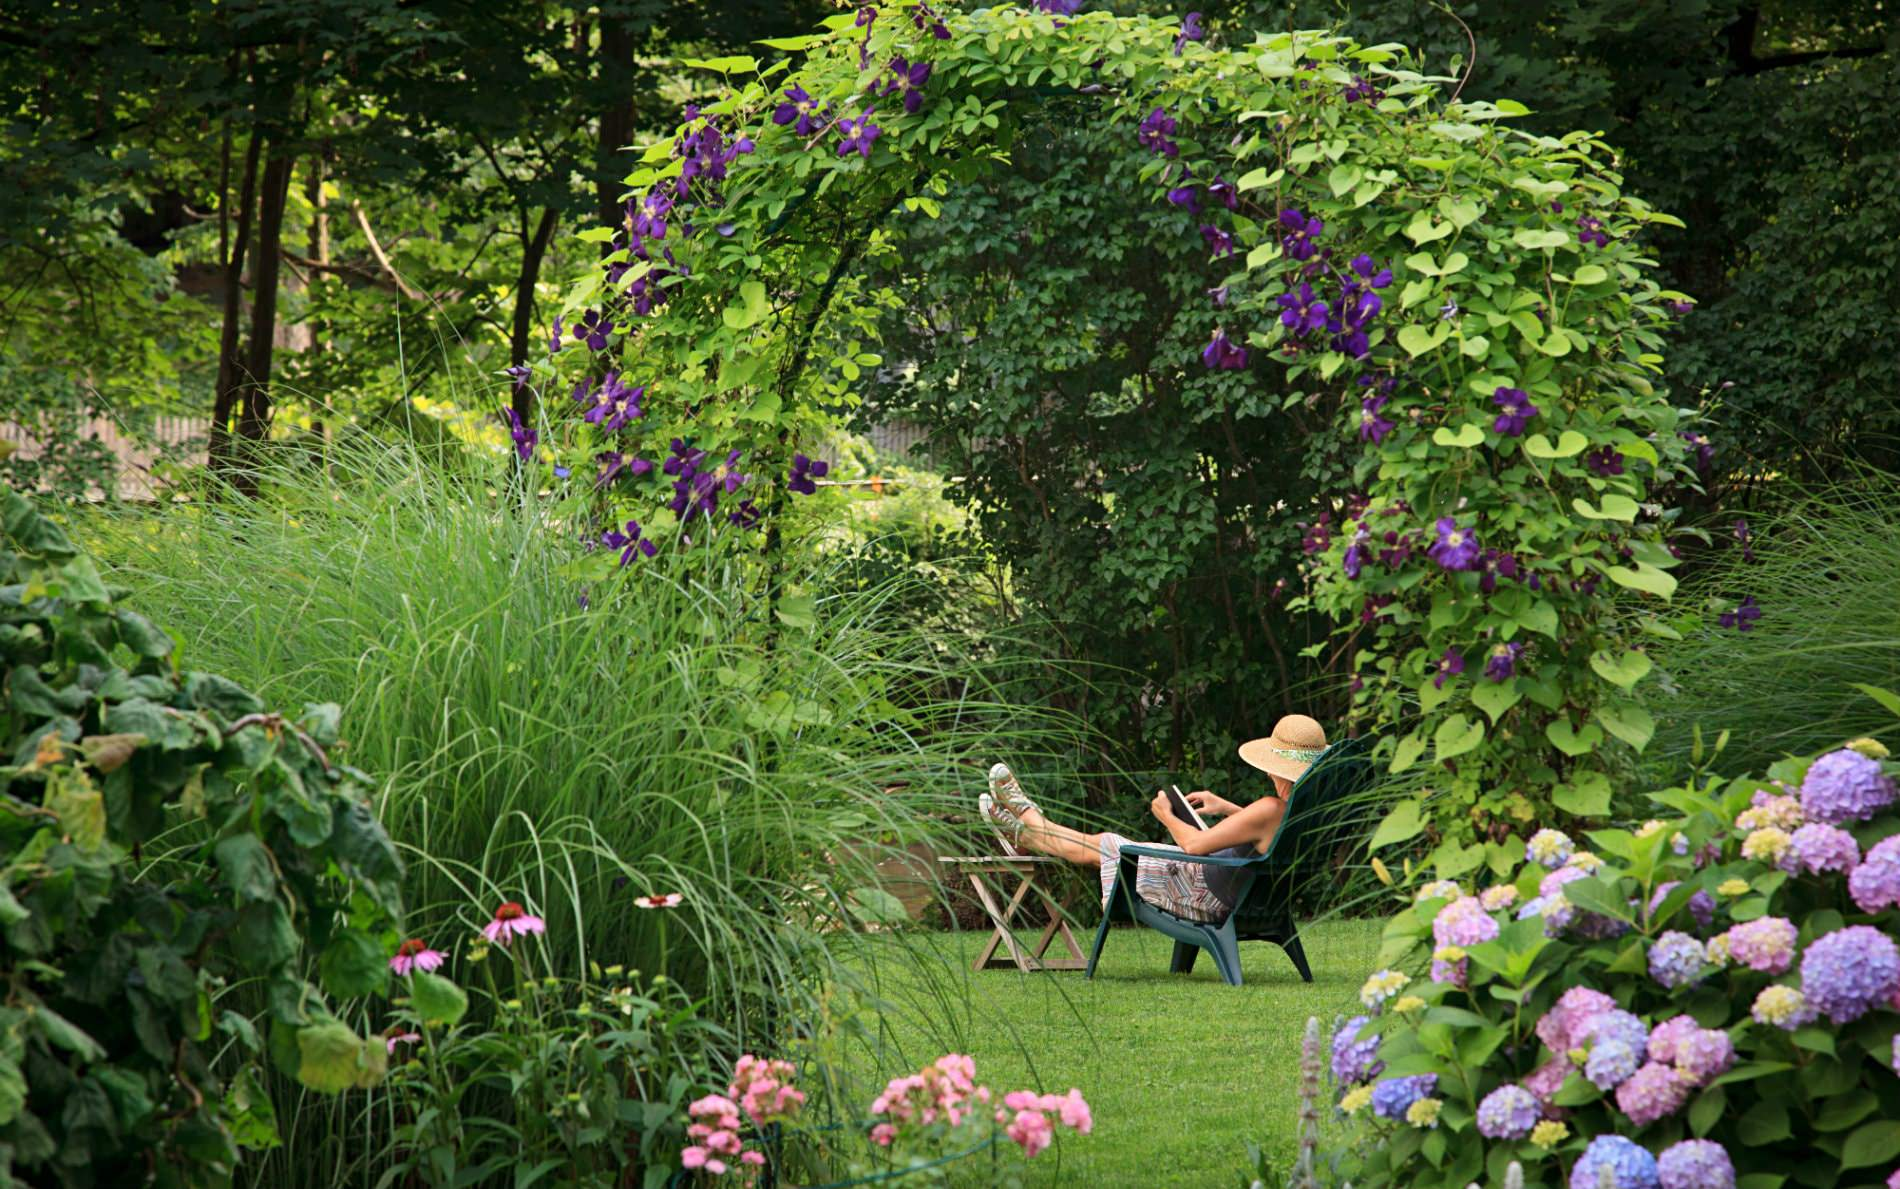 Woman relaxing in an Adirondack chair surrounded by green grass and lush green shrubs, flowers and trees